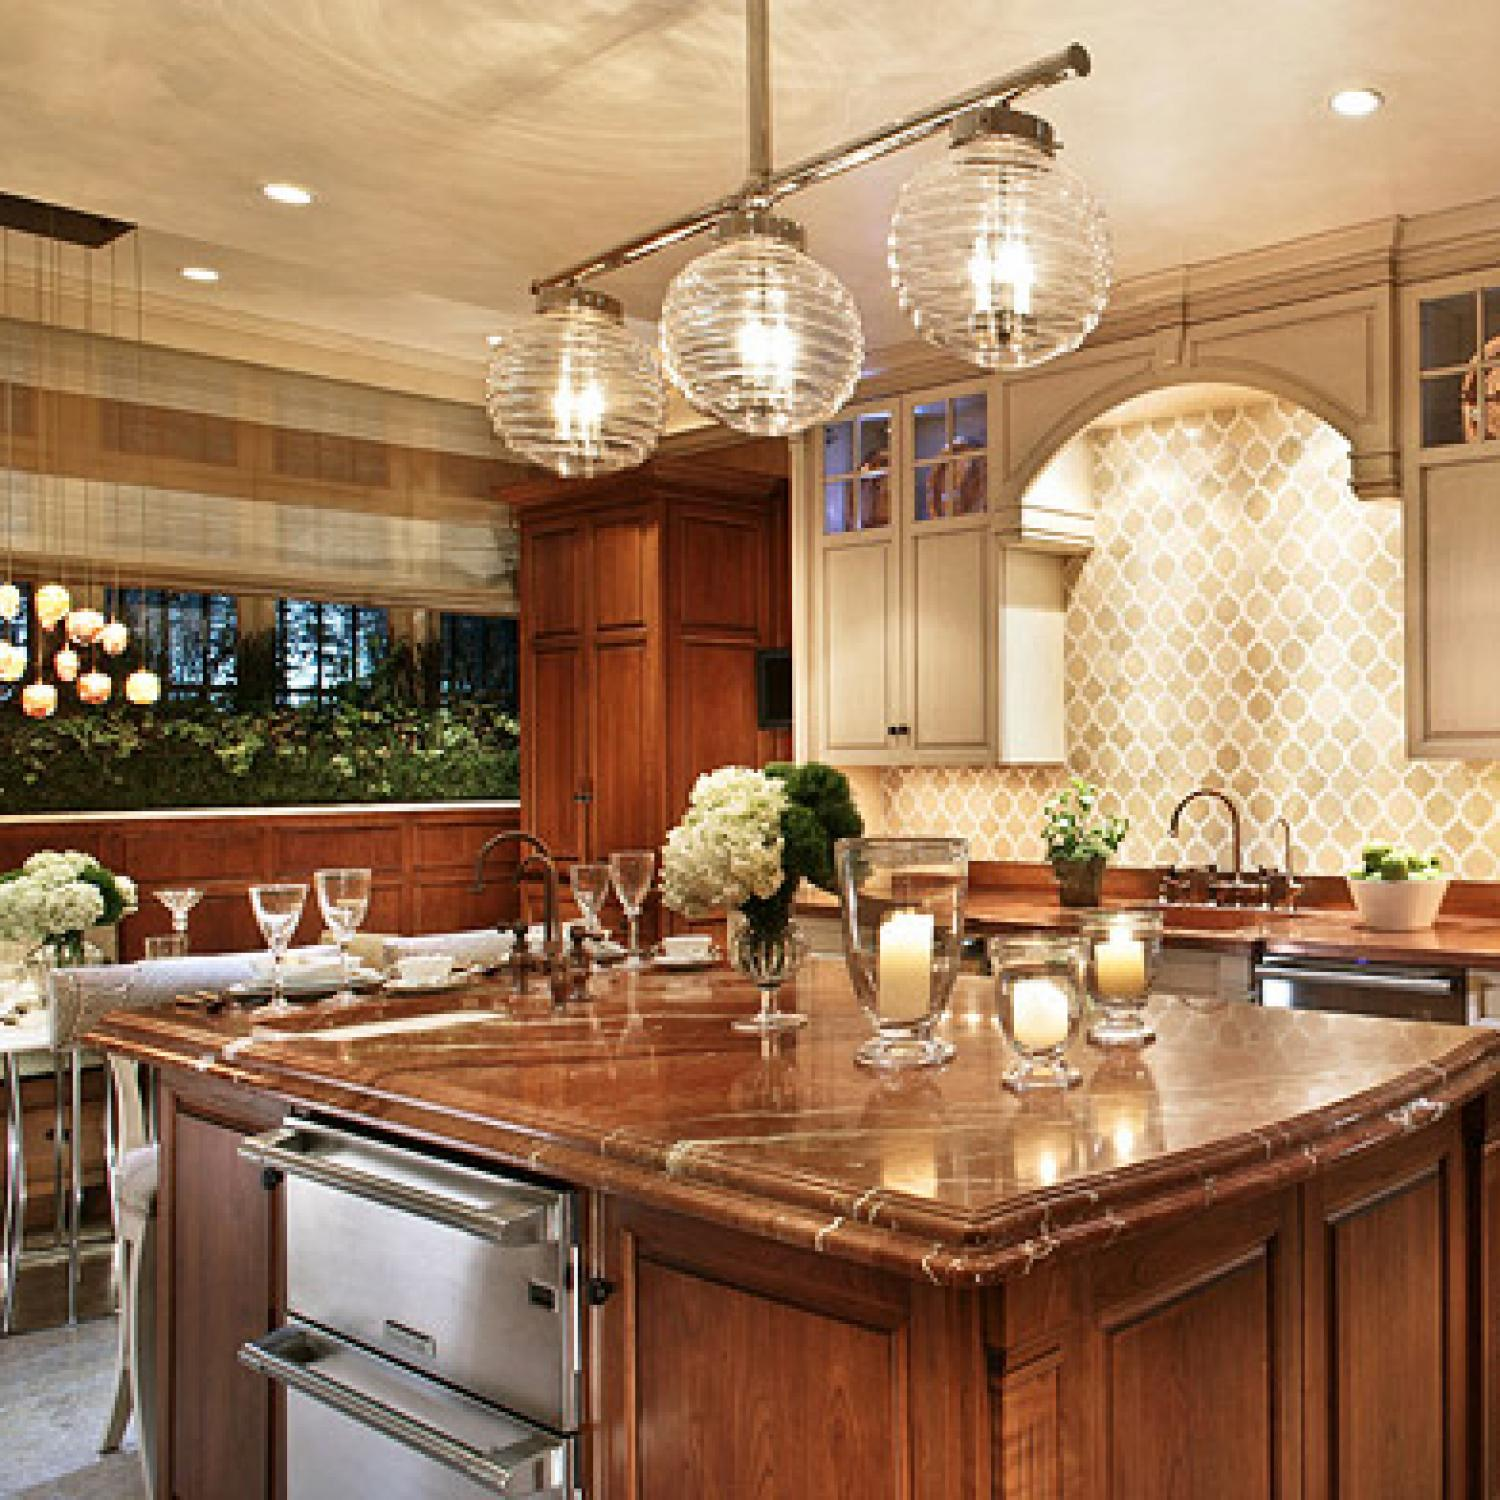 Kitchen Designs: Welcoming, Intimate Showhouse Kitchen